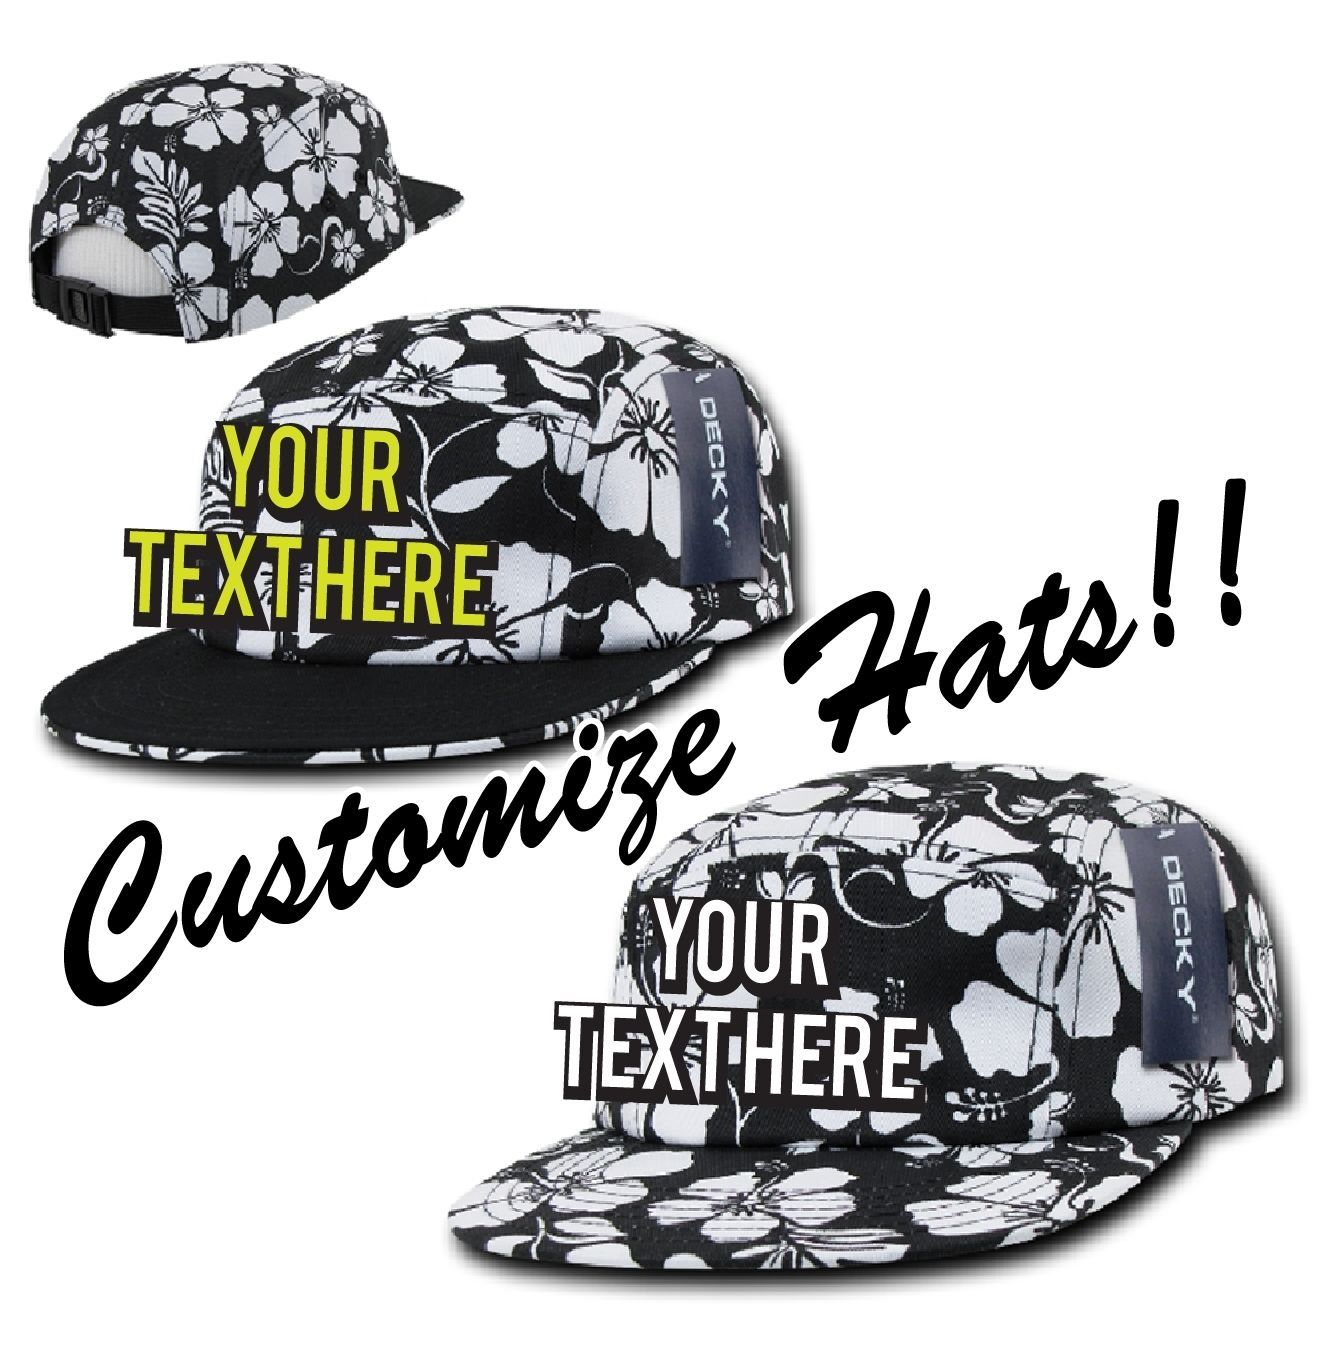 CUSTOM EMBROIDERY Personalized Decky 5 Panel Floral Racer Adjustable Cap 1069